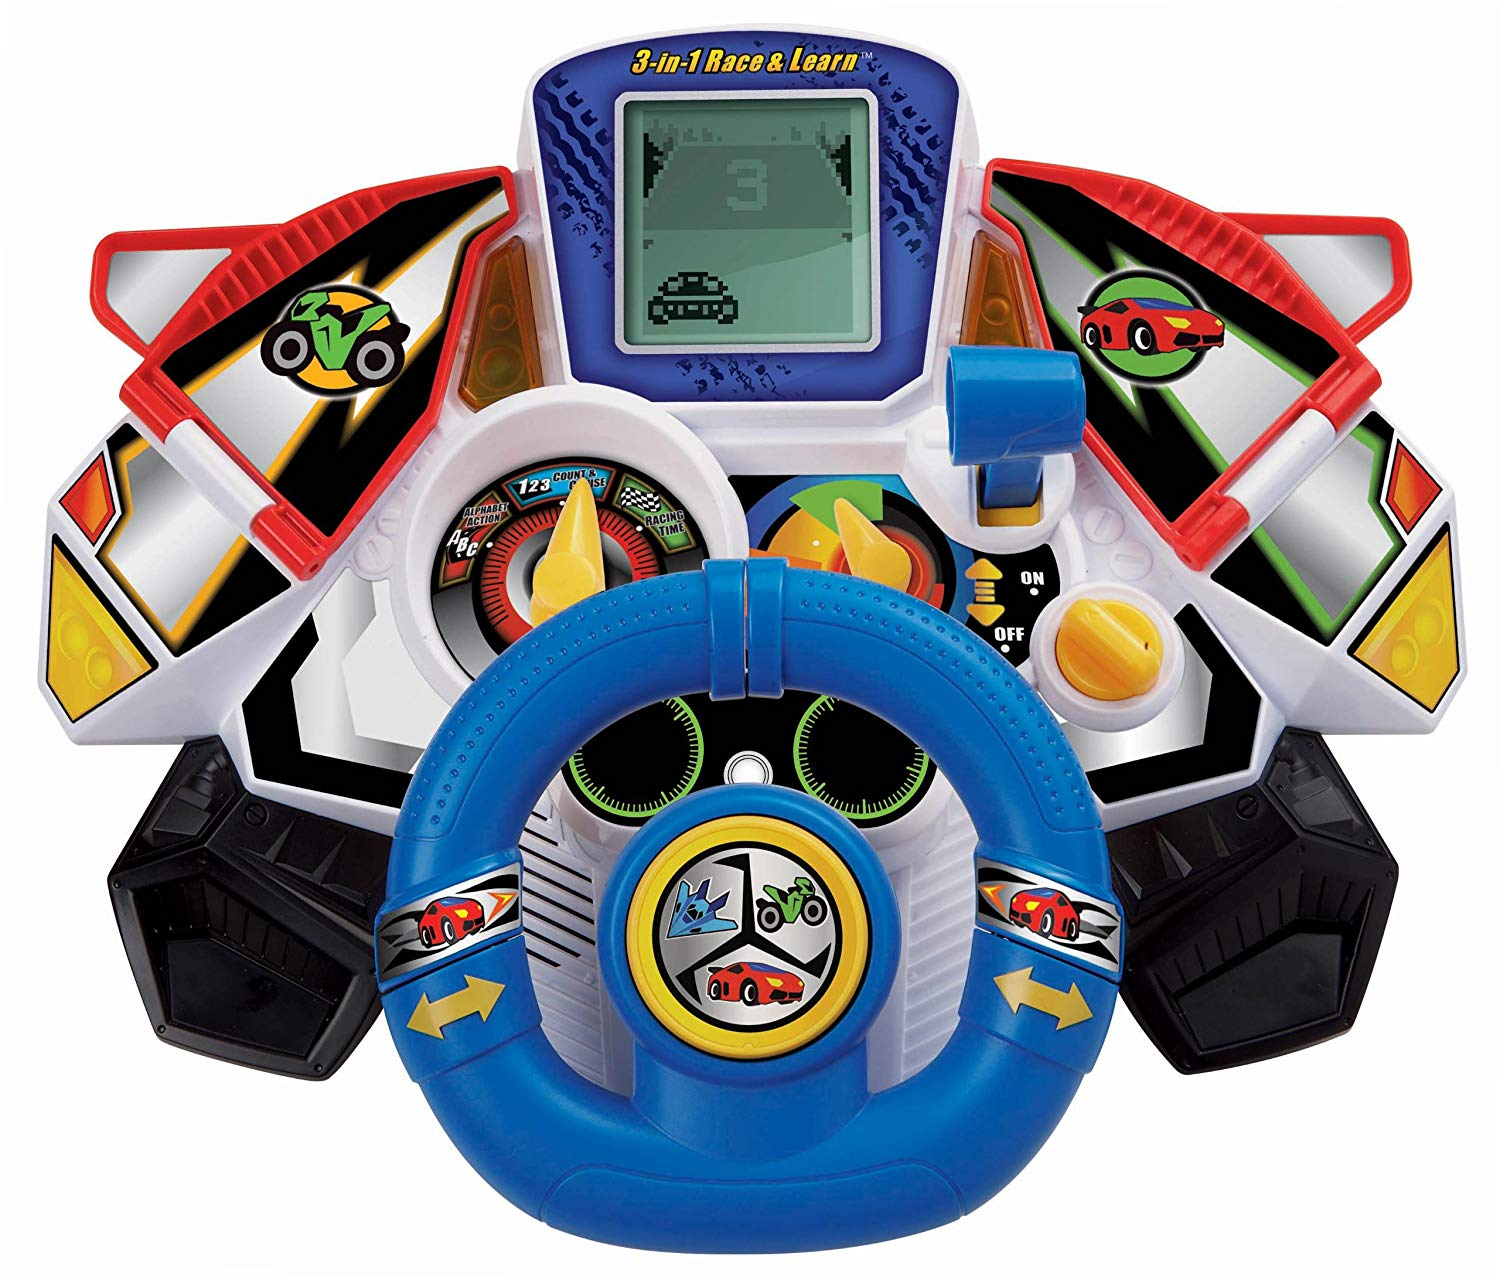 VTech Race and Learn